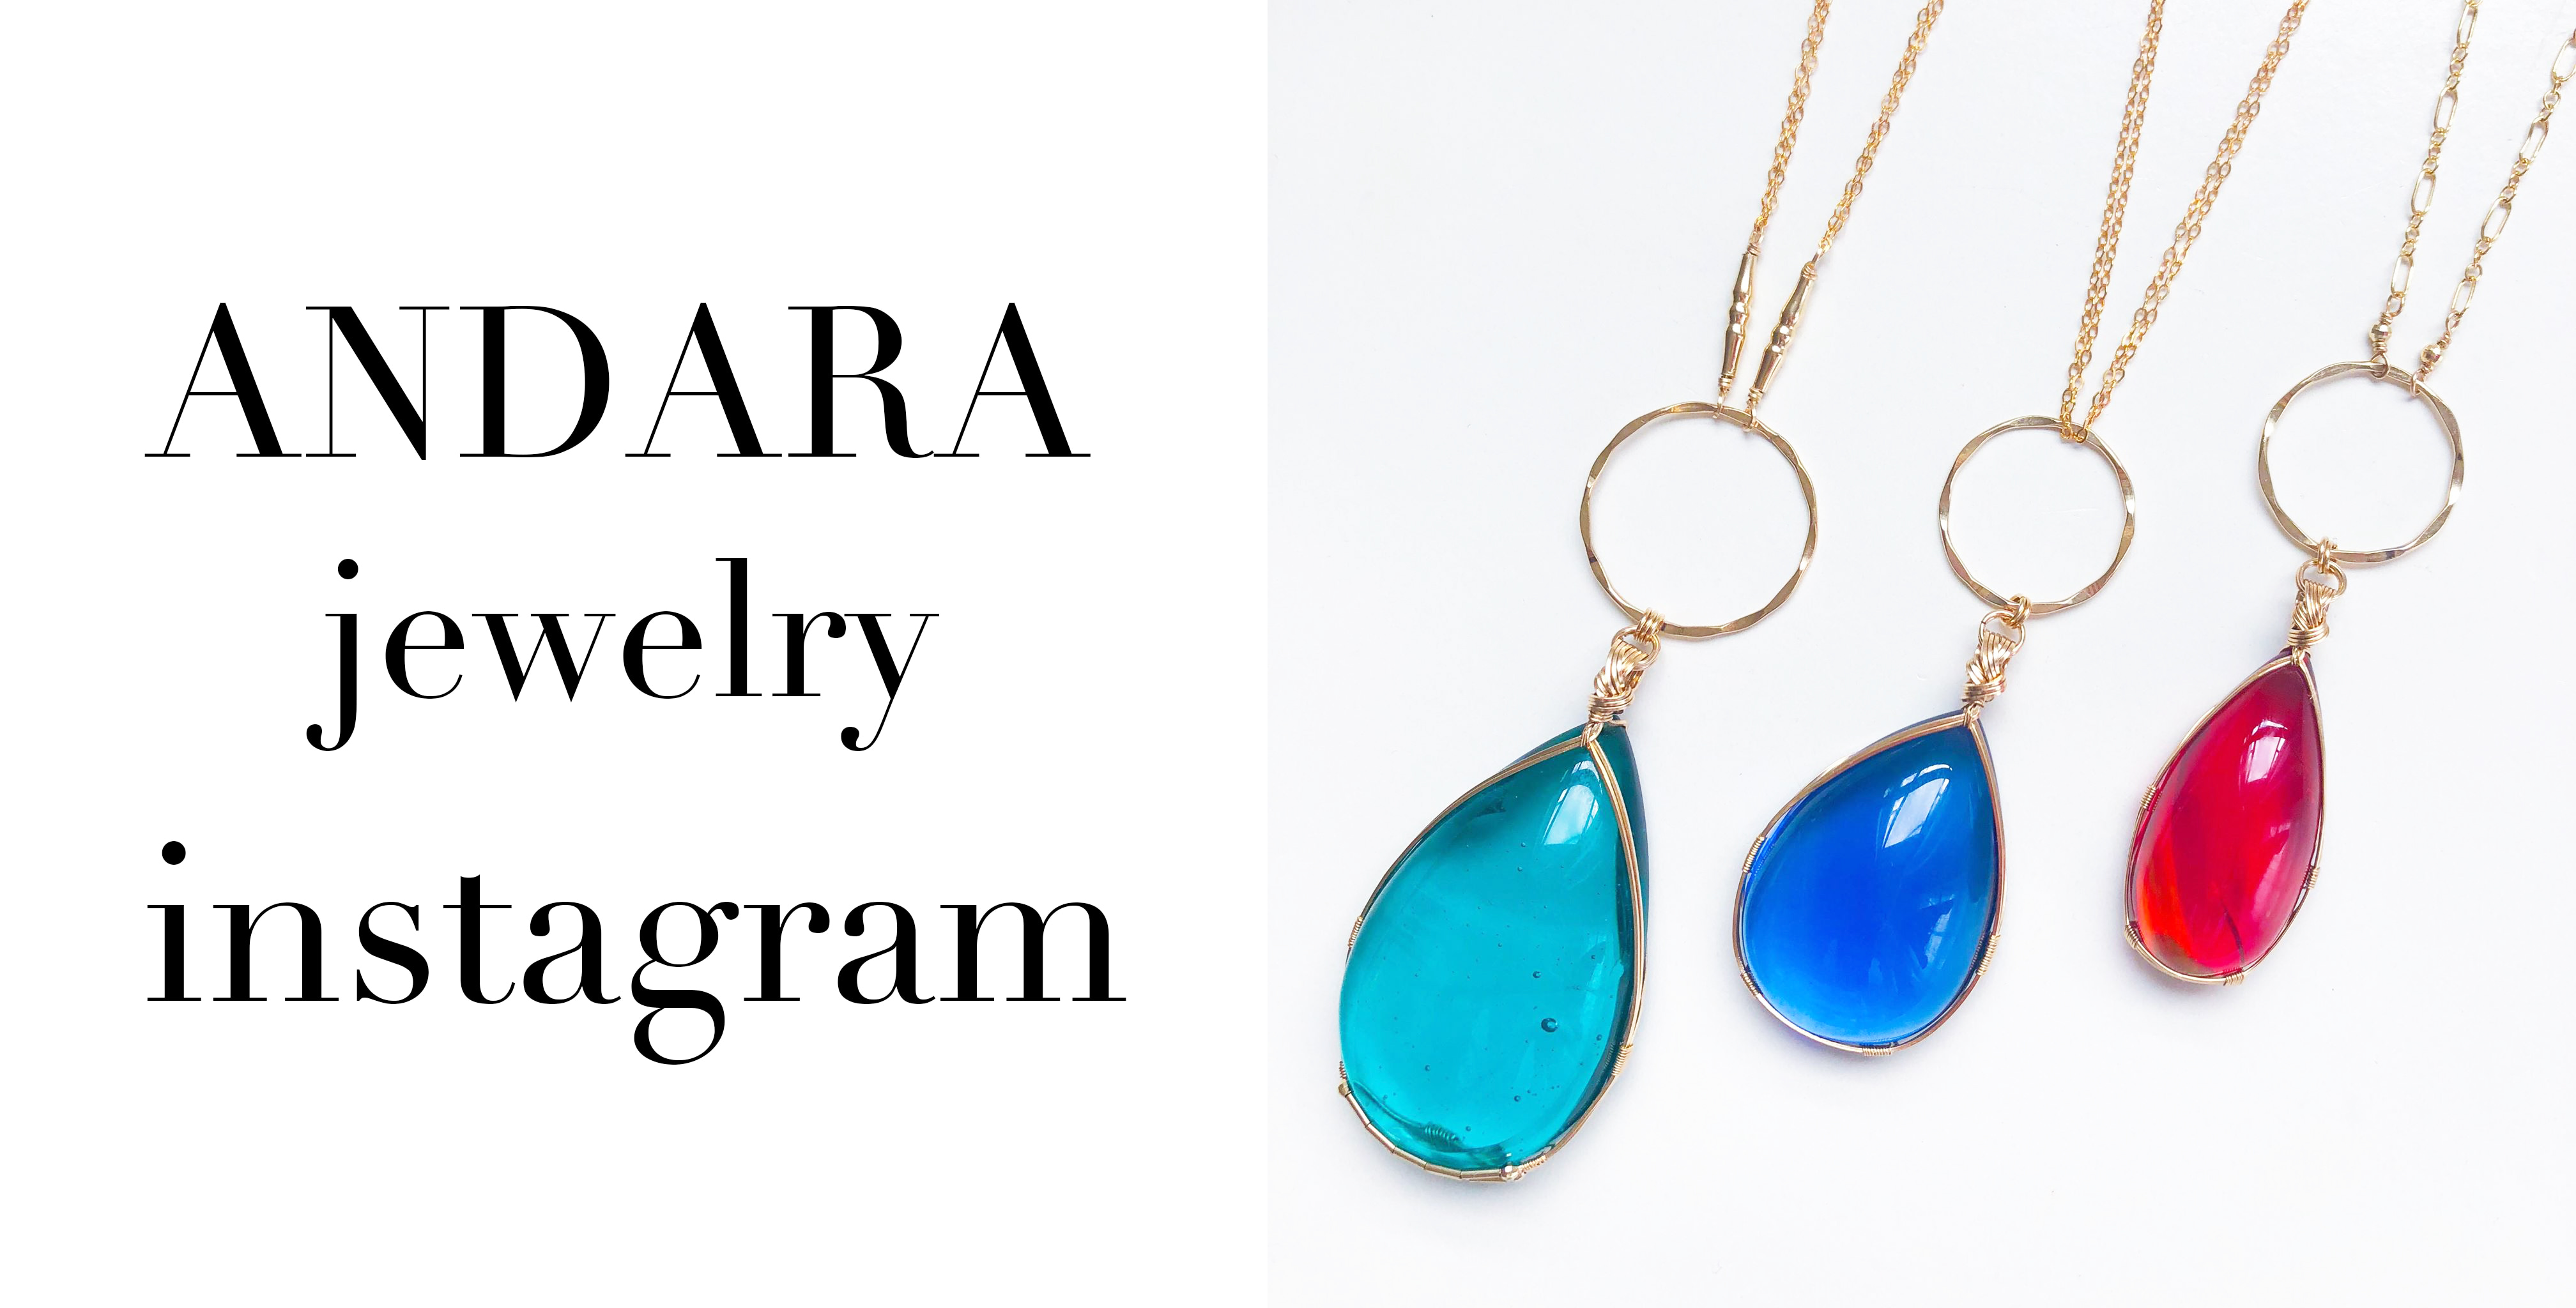 ANDARA jewelry instagram